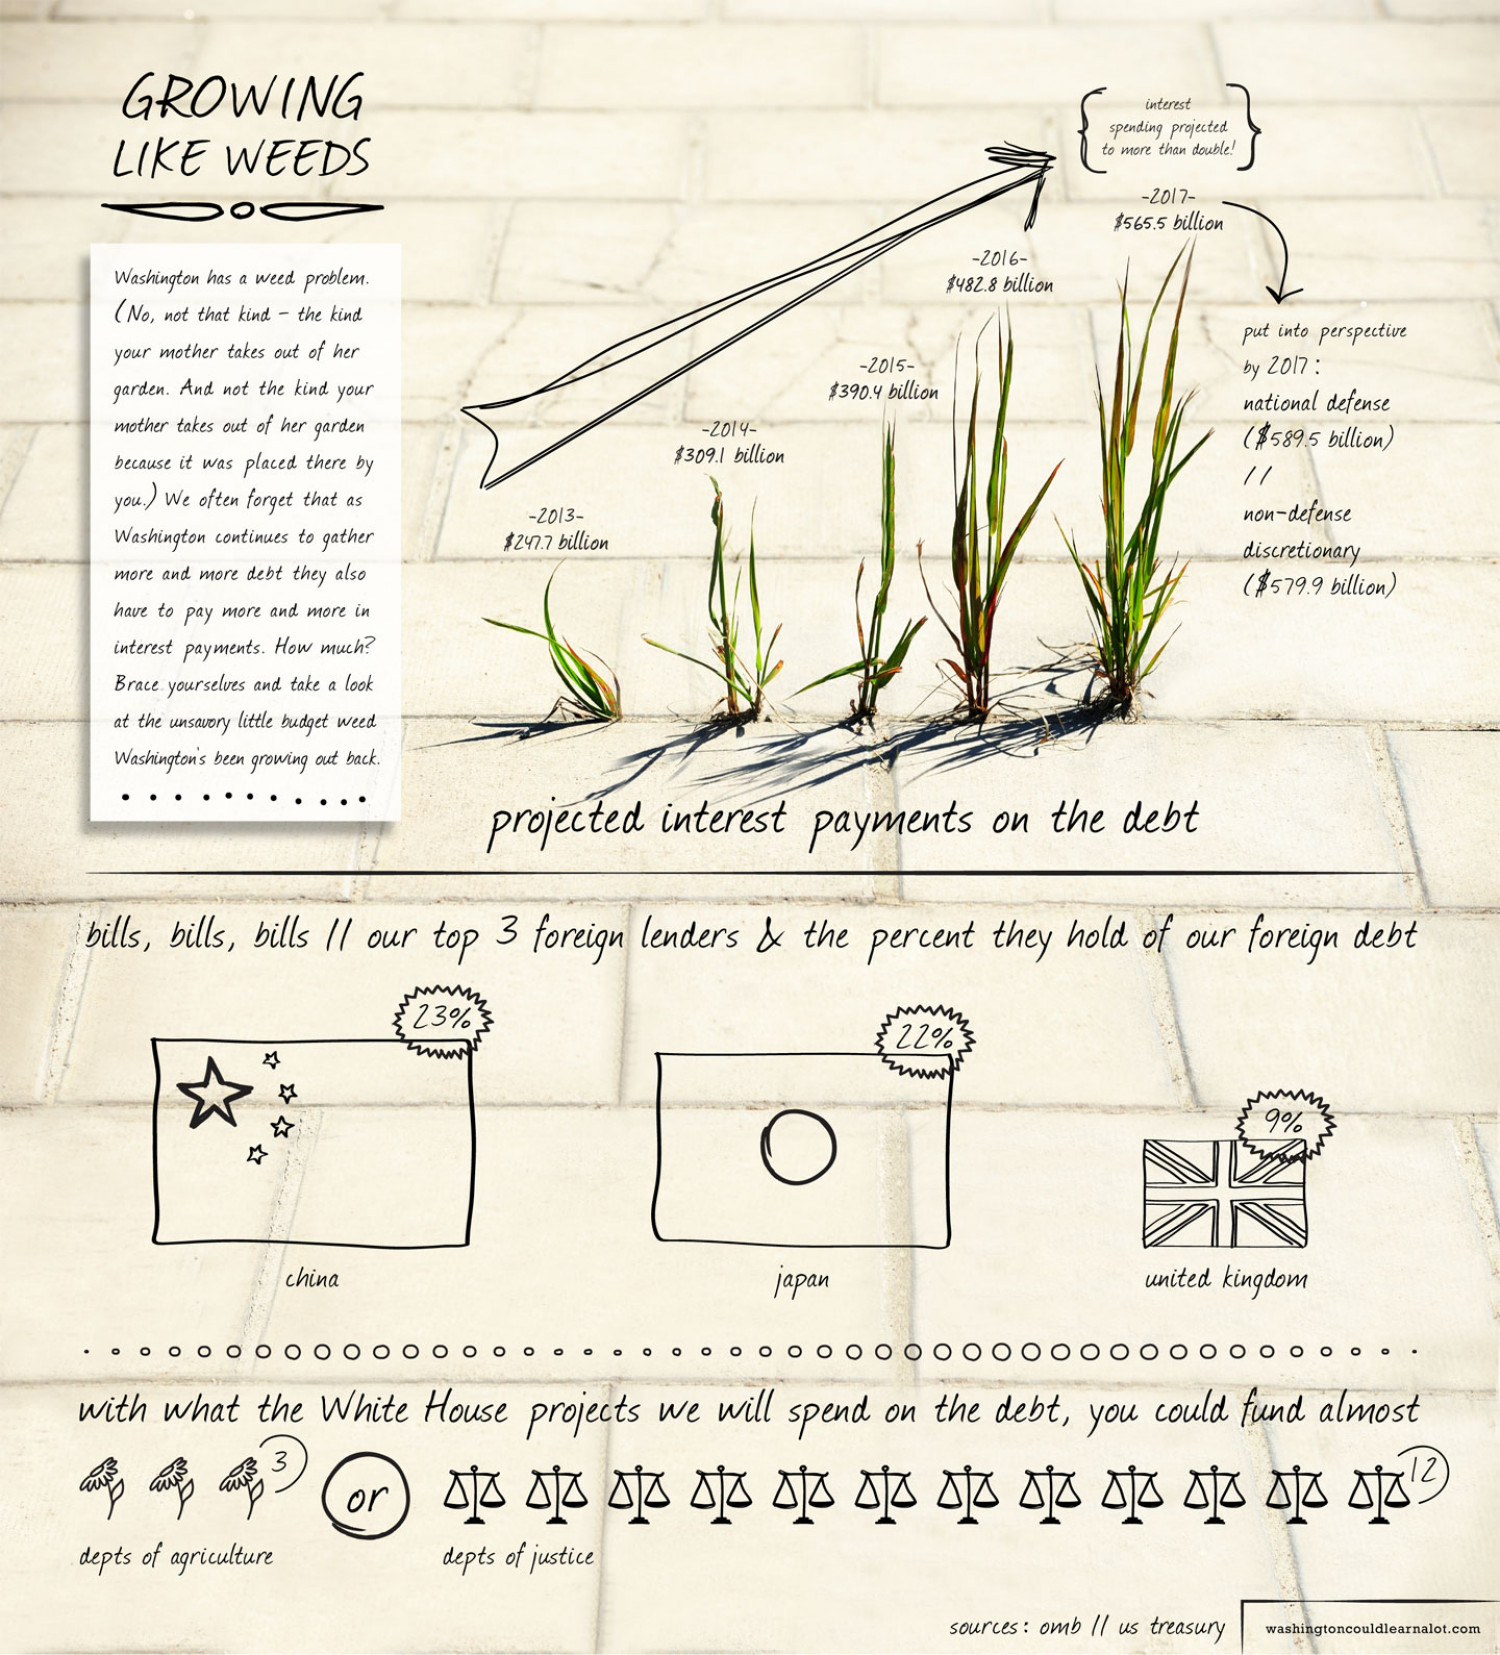 Growing Like Weeds Infographic